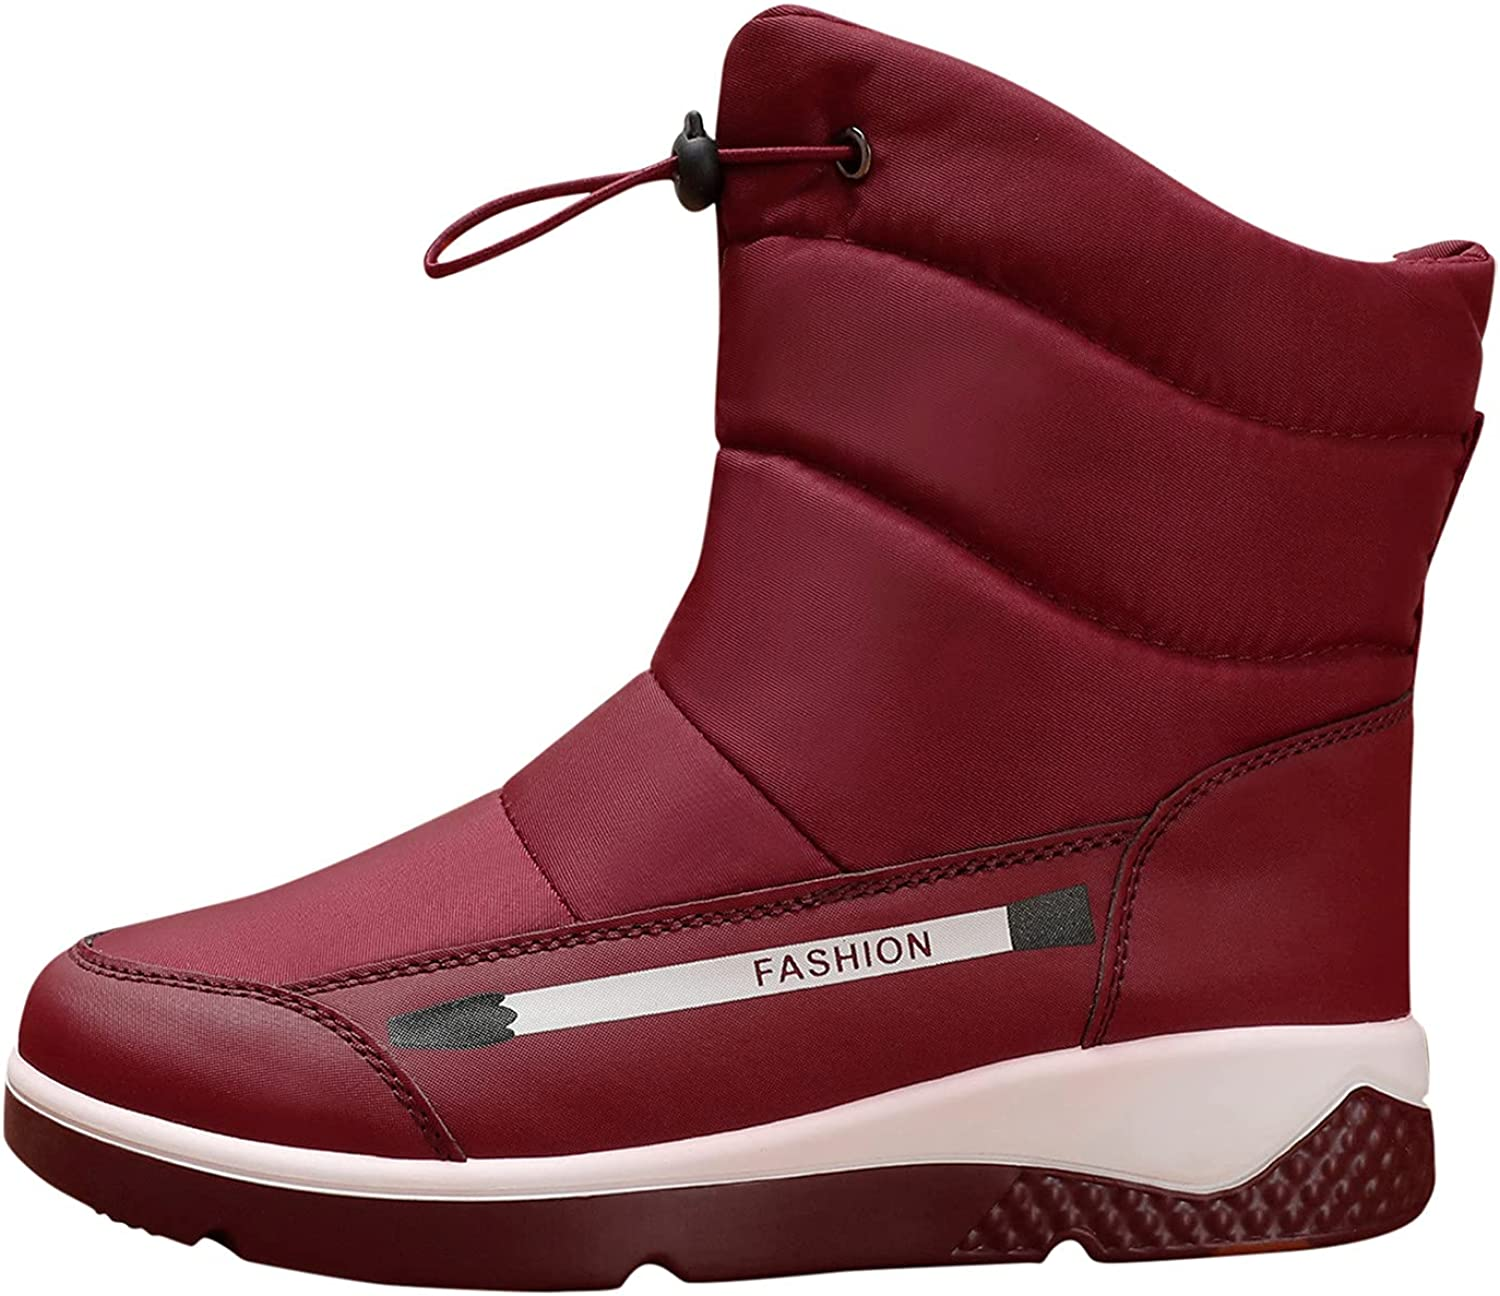 Max 51% OFF Womens Winter Snow Boots All stores are sold Fur Lined Wate On Ankle Warm Slip